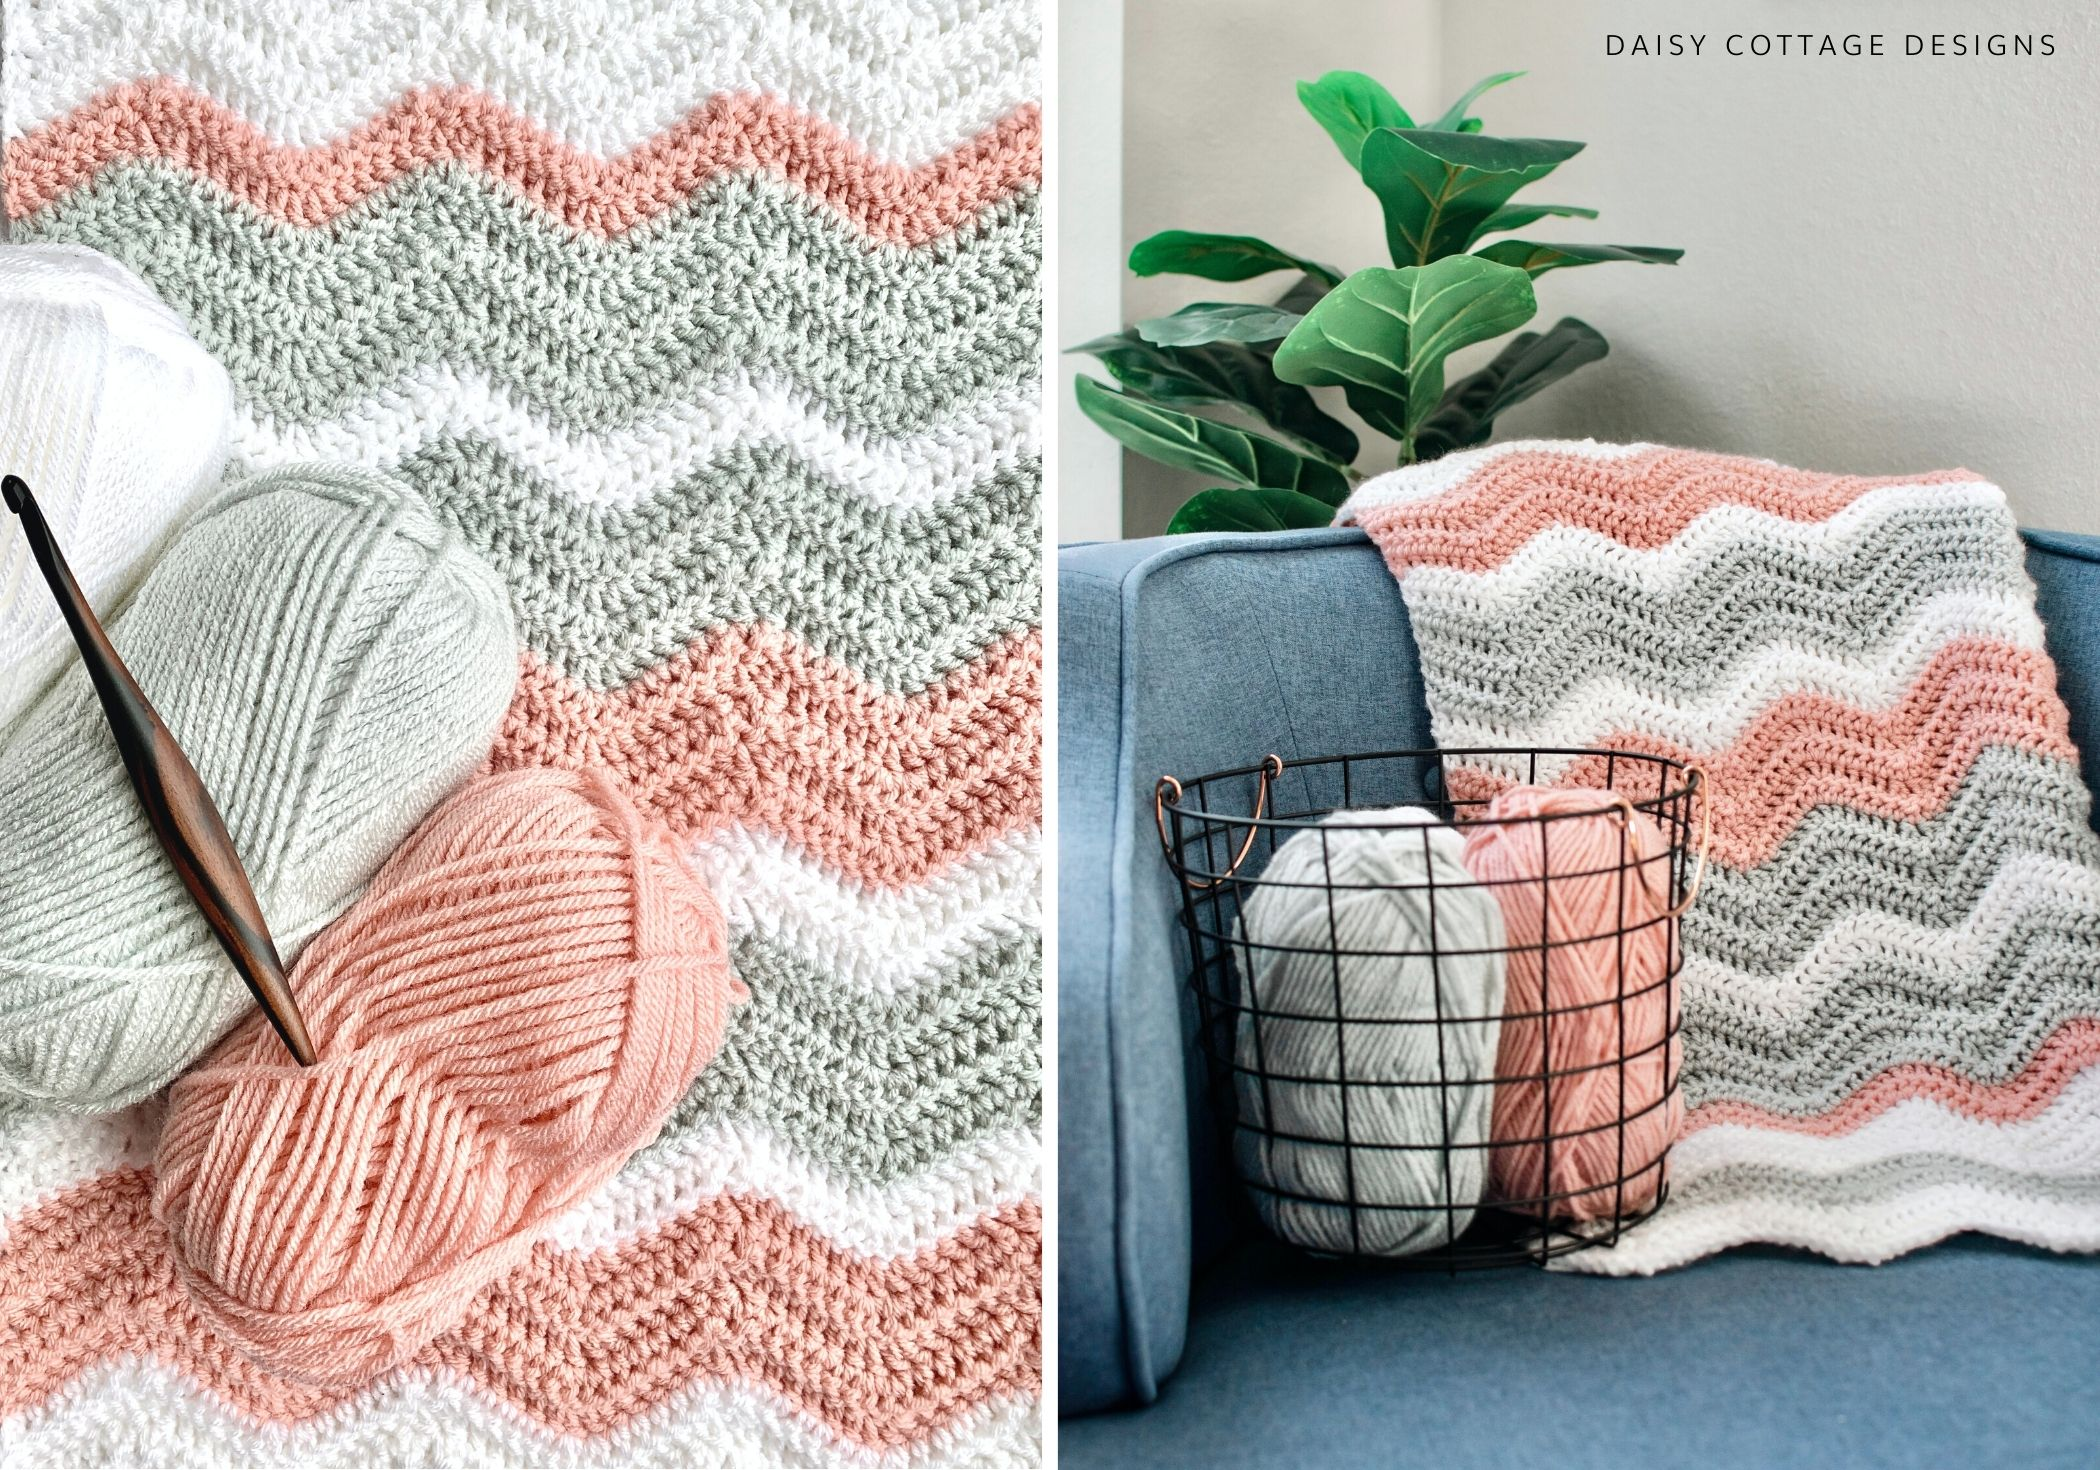 Free Crochet Baby Blanket Ripple Patterns : Ripple Blanket Crochet Pattern - Daisy Cottage Designs